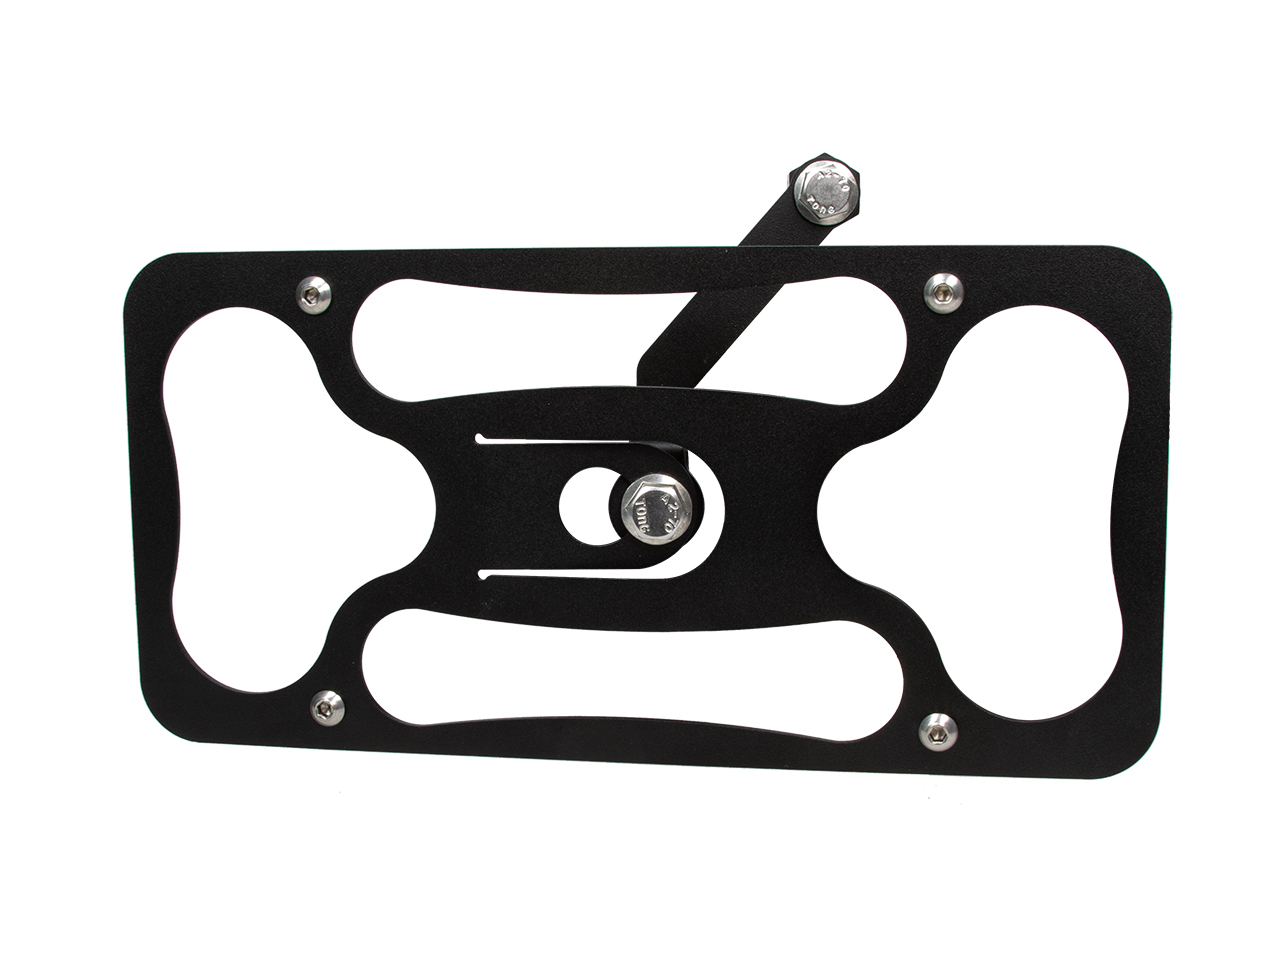 No Drilling 2017-2020 Made in USA Platypus License Plate Mount for Mazda CX-5 Made of Stainless Steel /& Aluminum Installs in Seconds